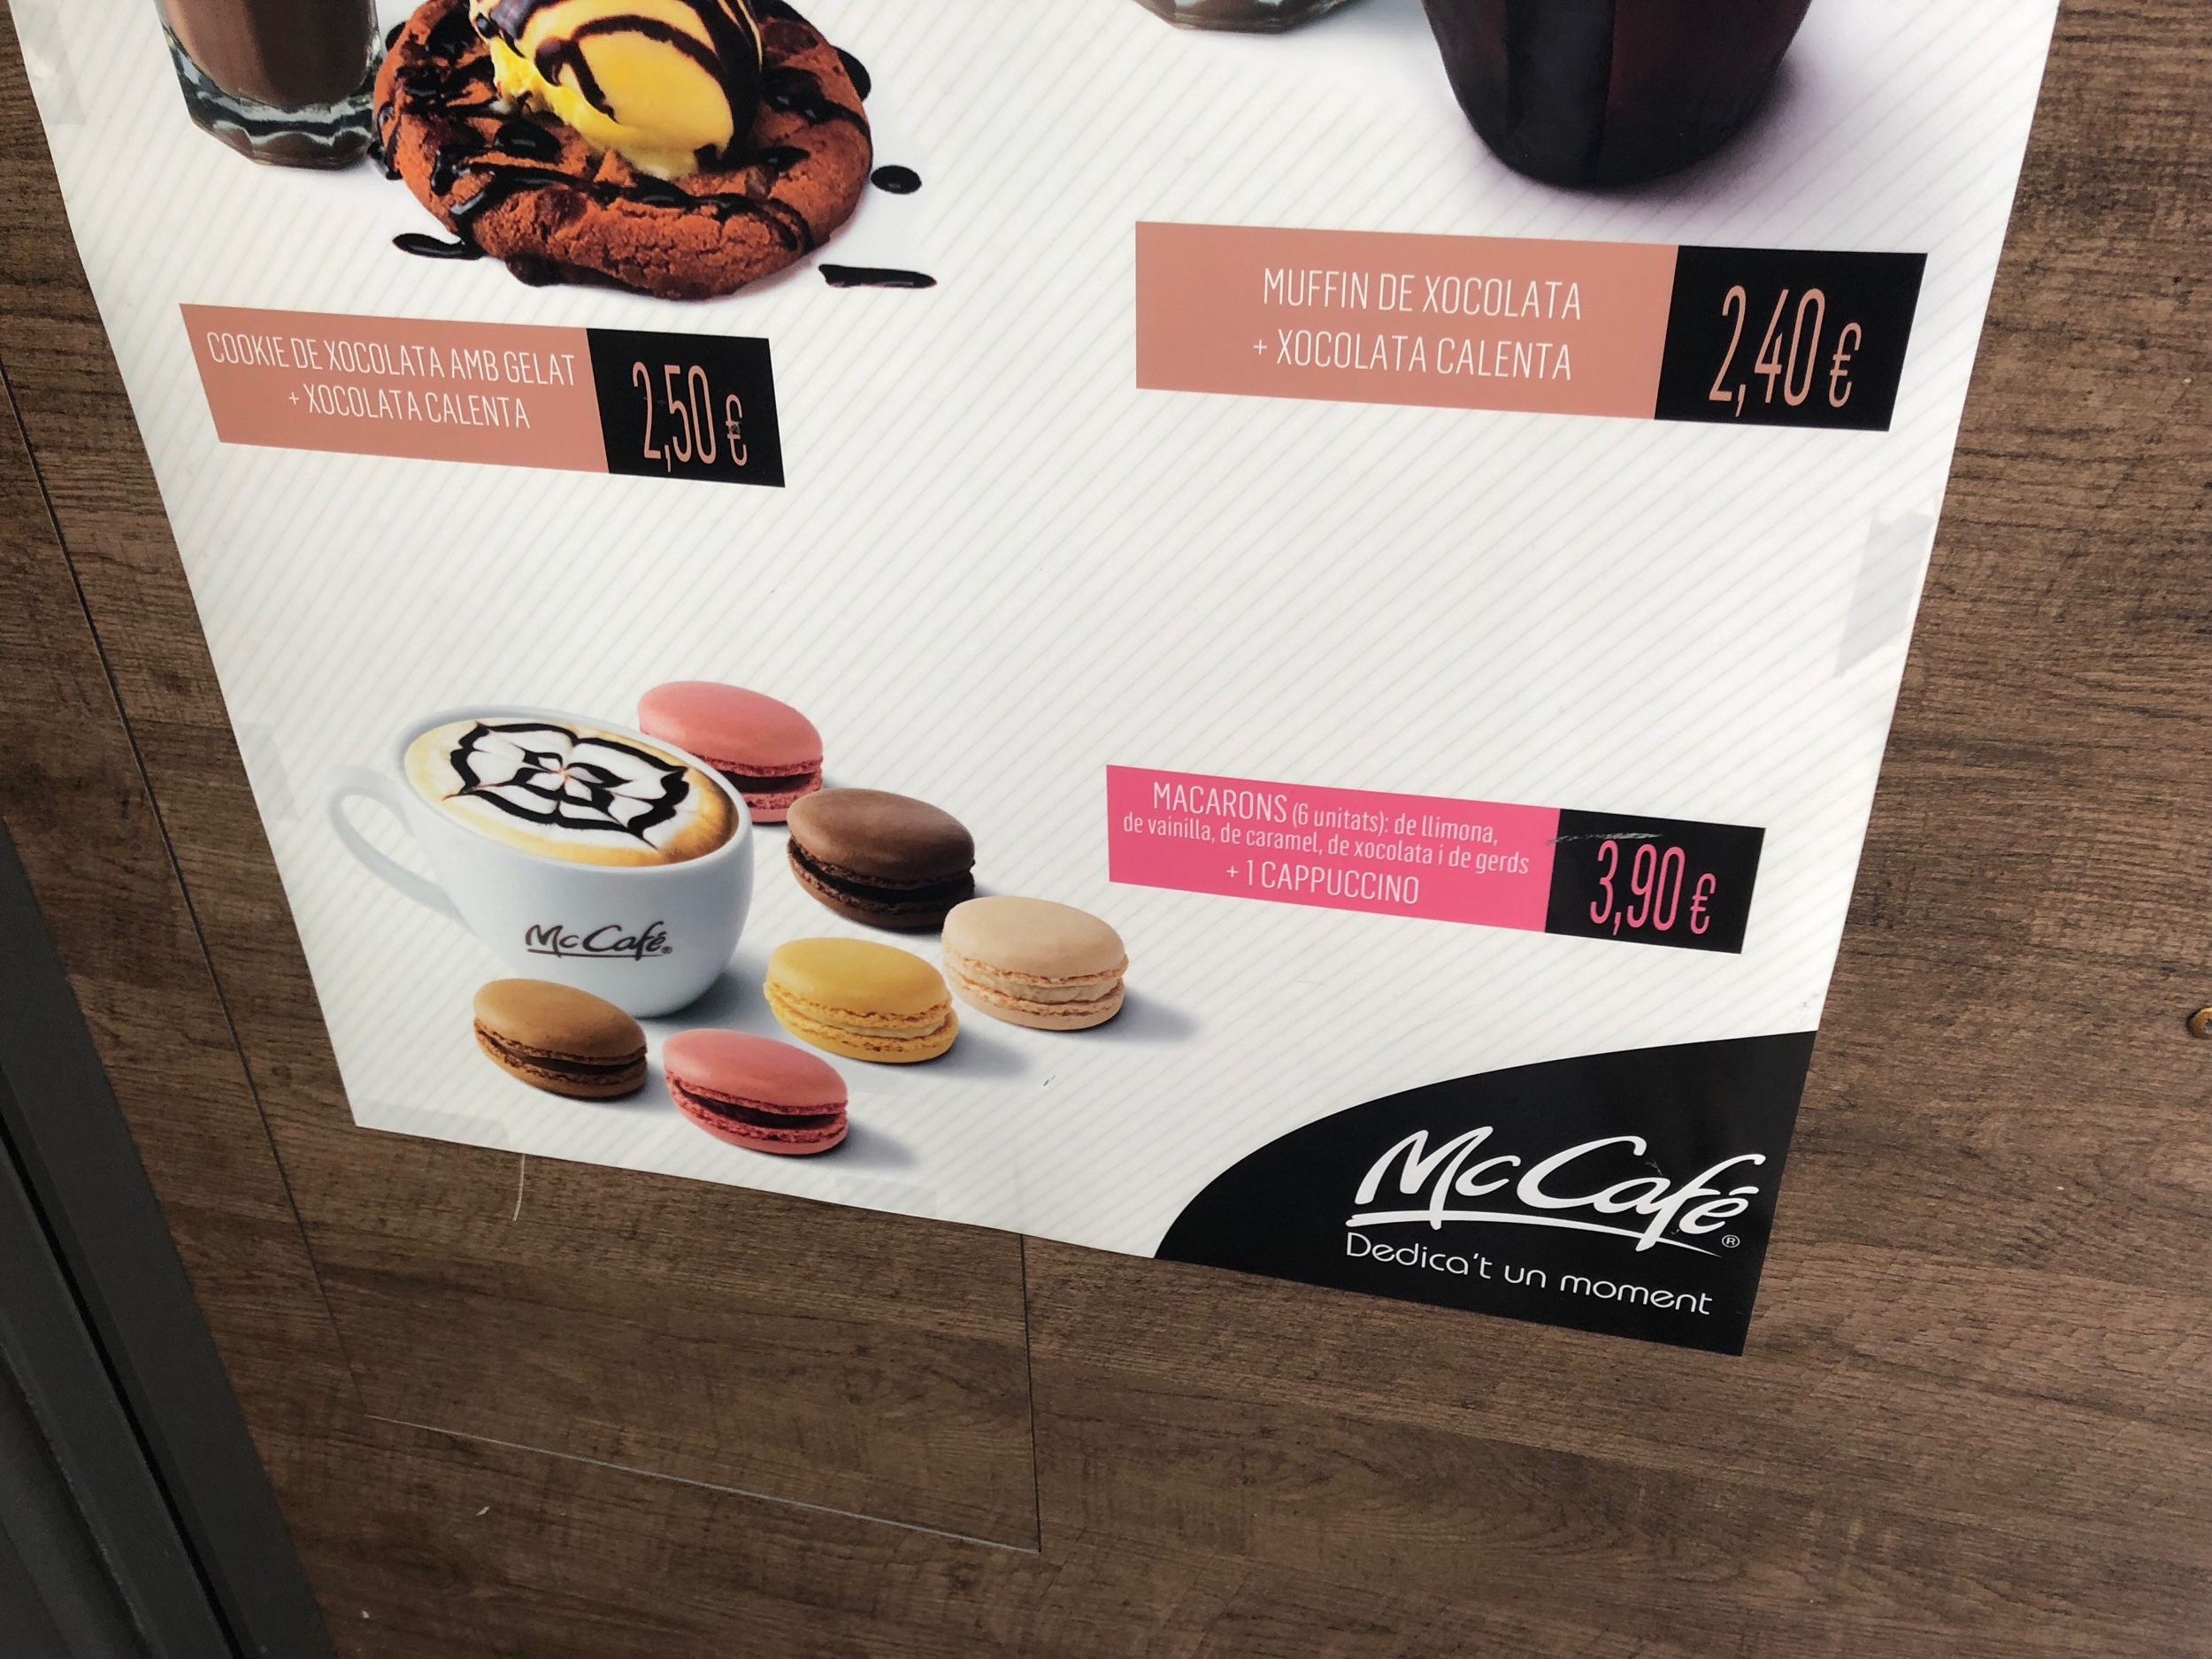 Macarons available at McDonalds!